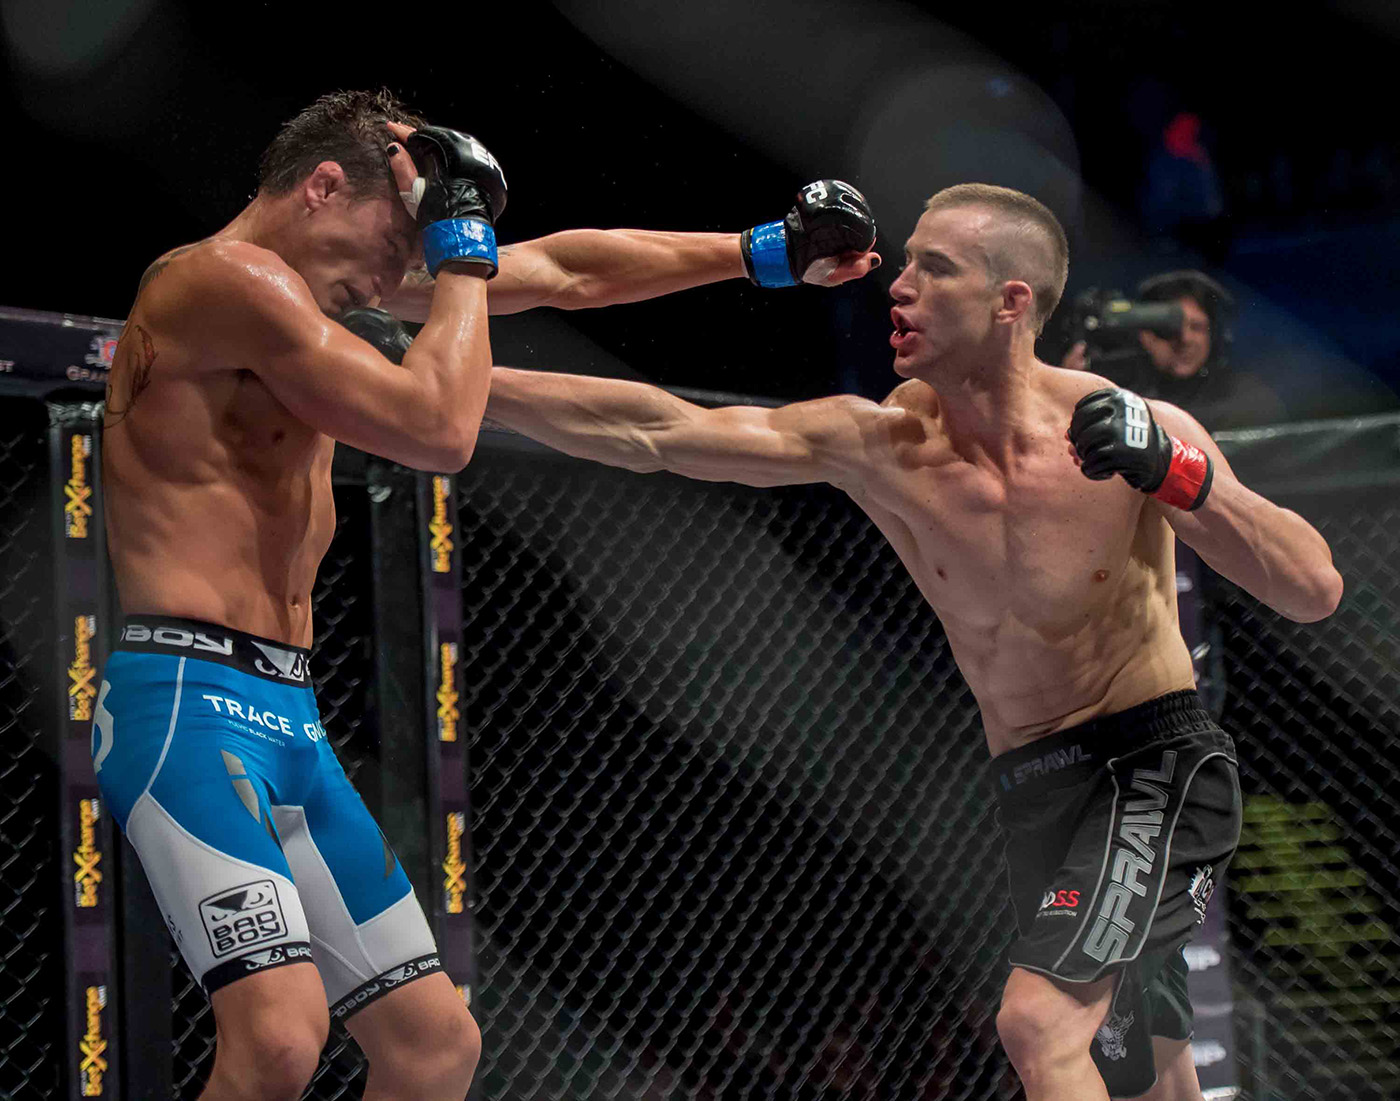 EFC Featherweight champion Boyd Allen lands a punch against Don Madge at EFC 30 at the Grandwest Casino, Cape Town.  Image by  Anton Geyser